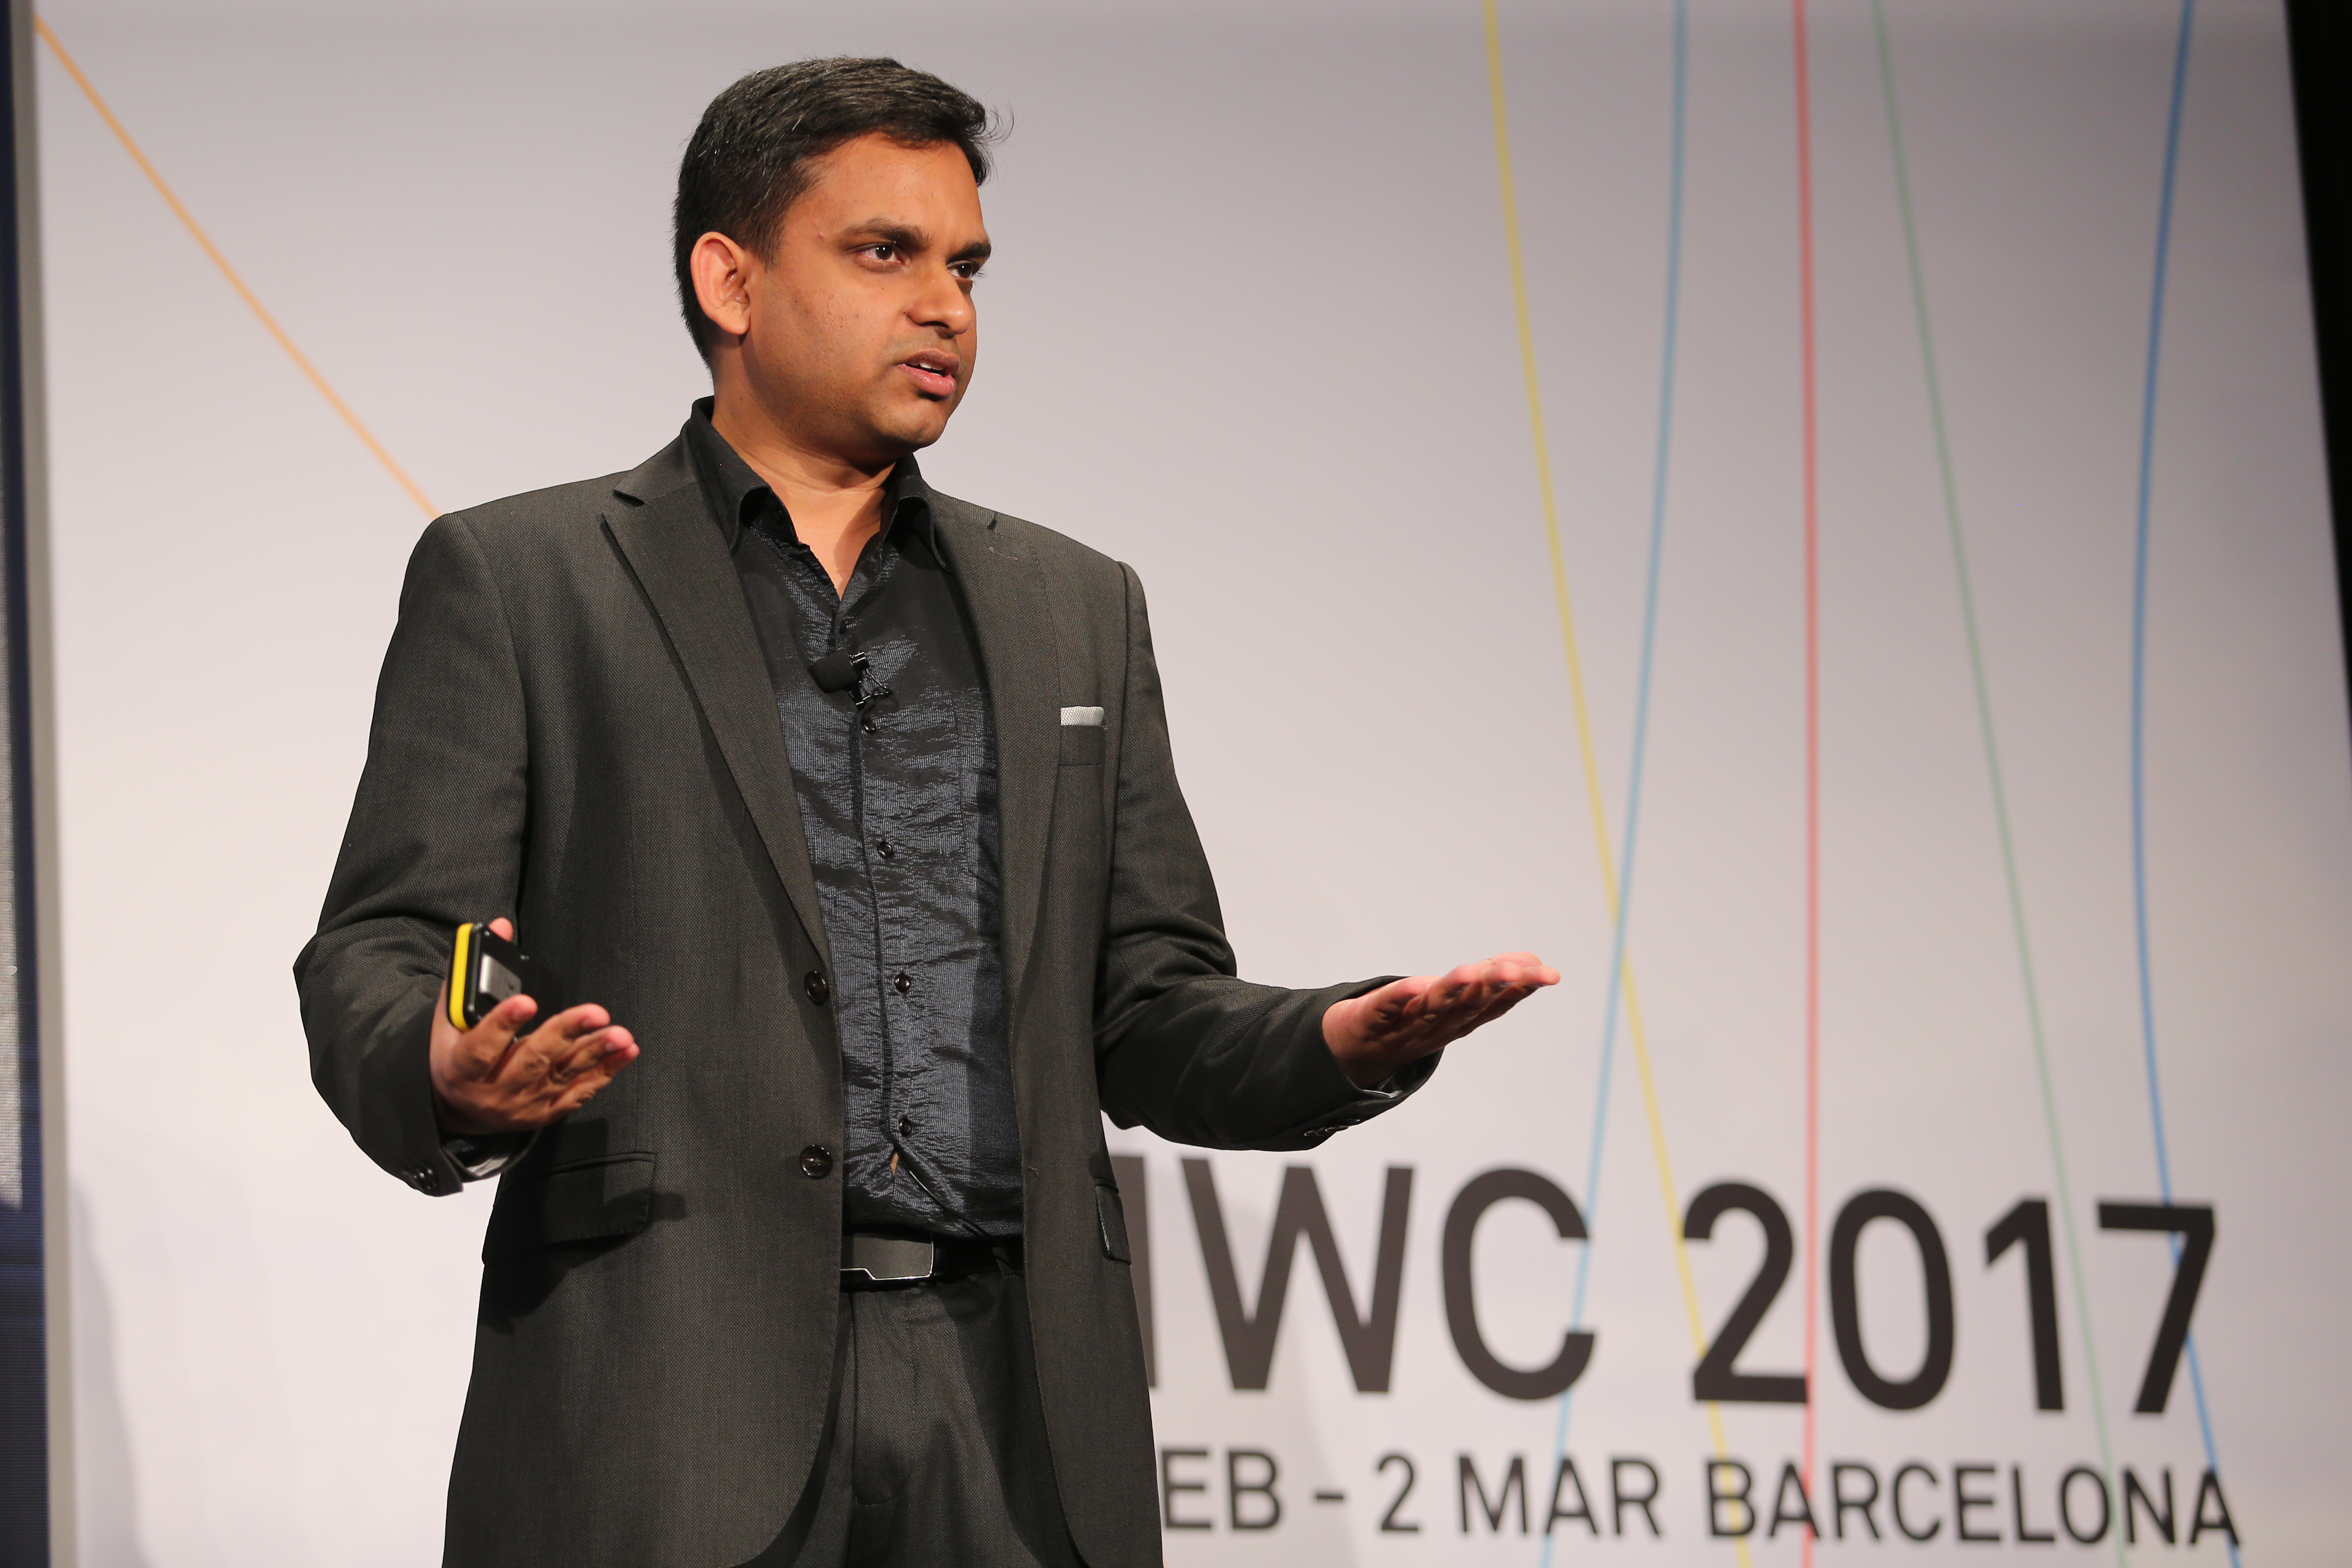 Sangeet Paul Choudary at the Mobile World Congress 2017